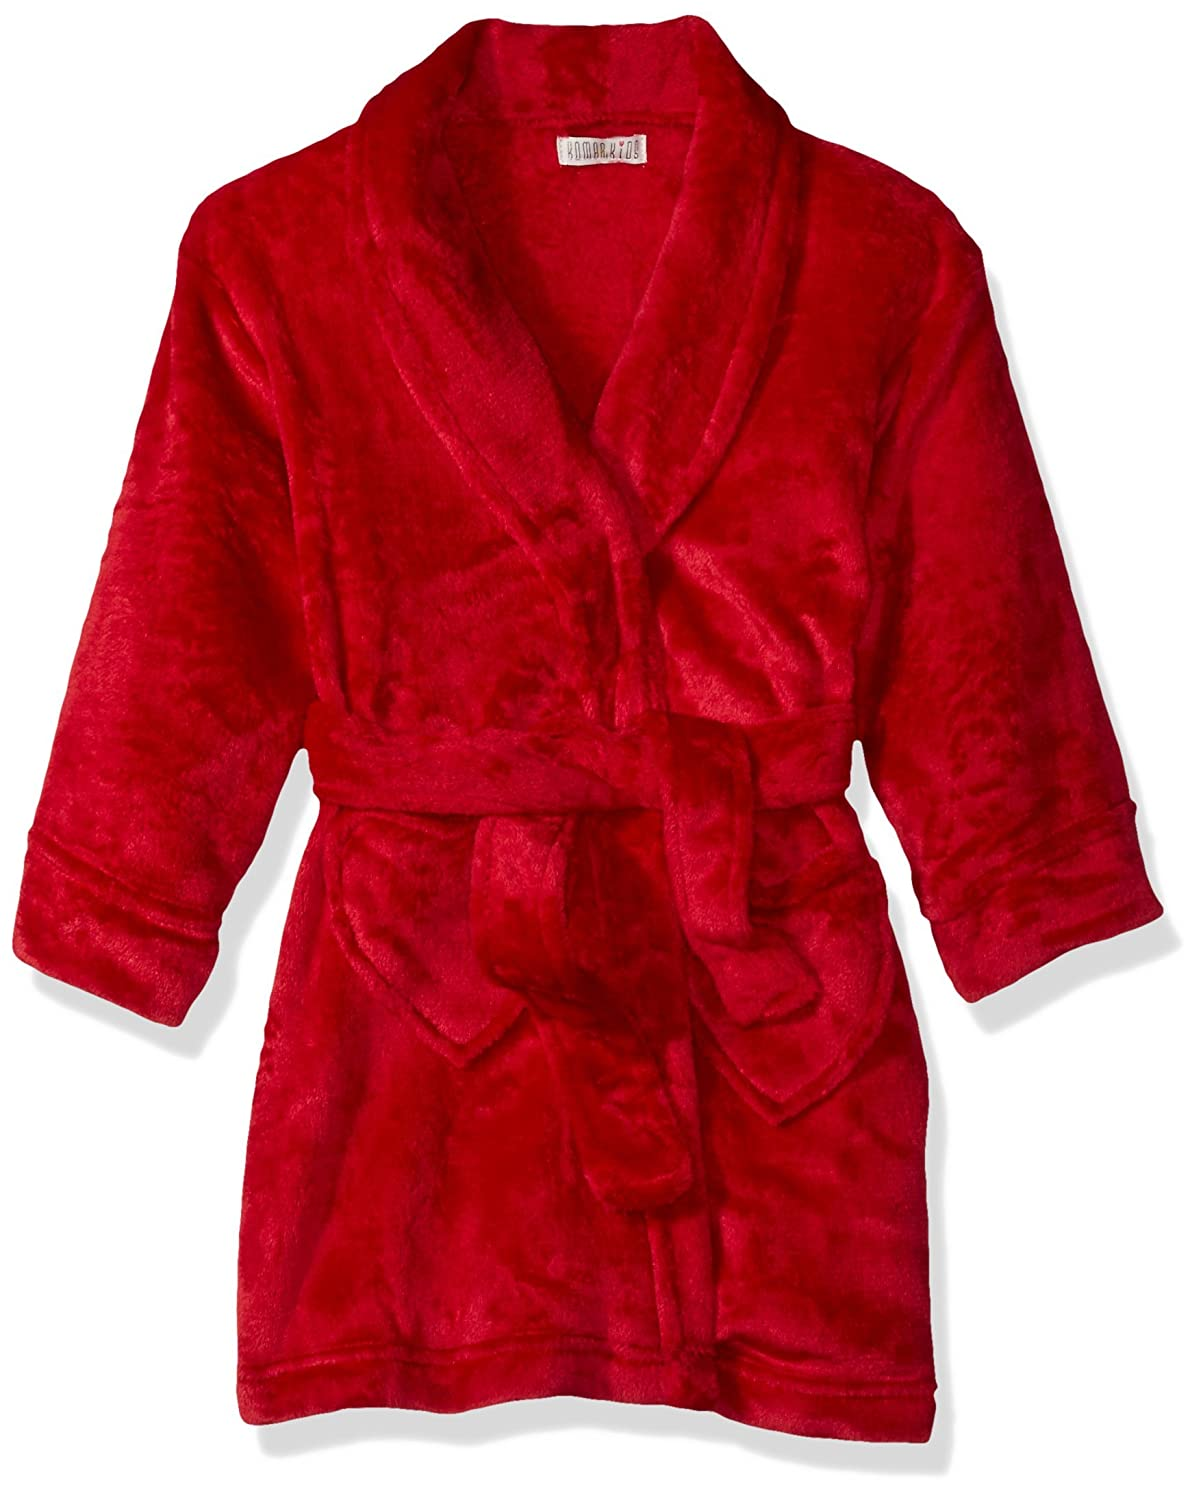 Komar Kids girls Heart Velvet Fleece Robe K171301